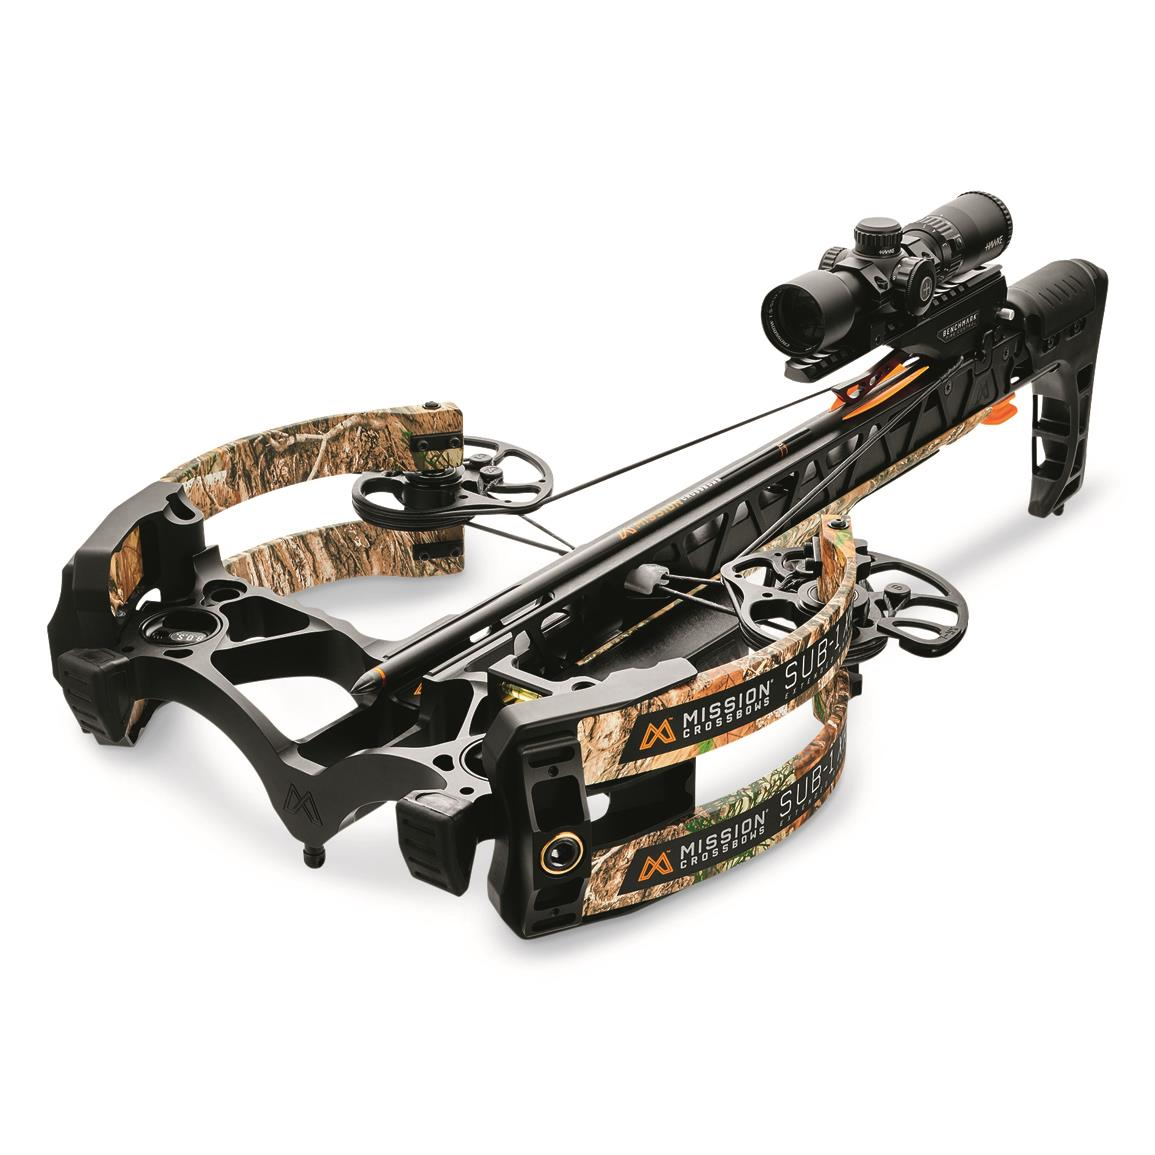 Mission Sub-1 XR Crossbow with Pro Accessory Kit